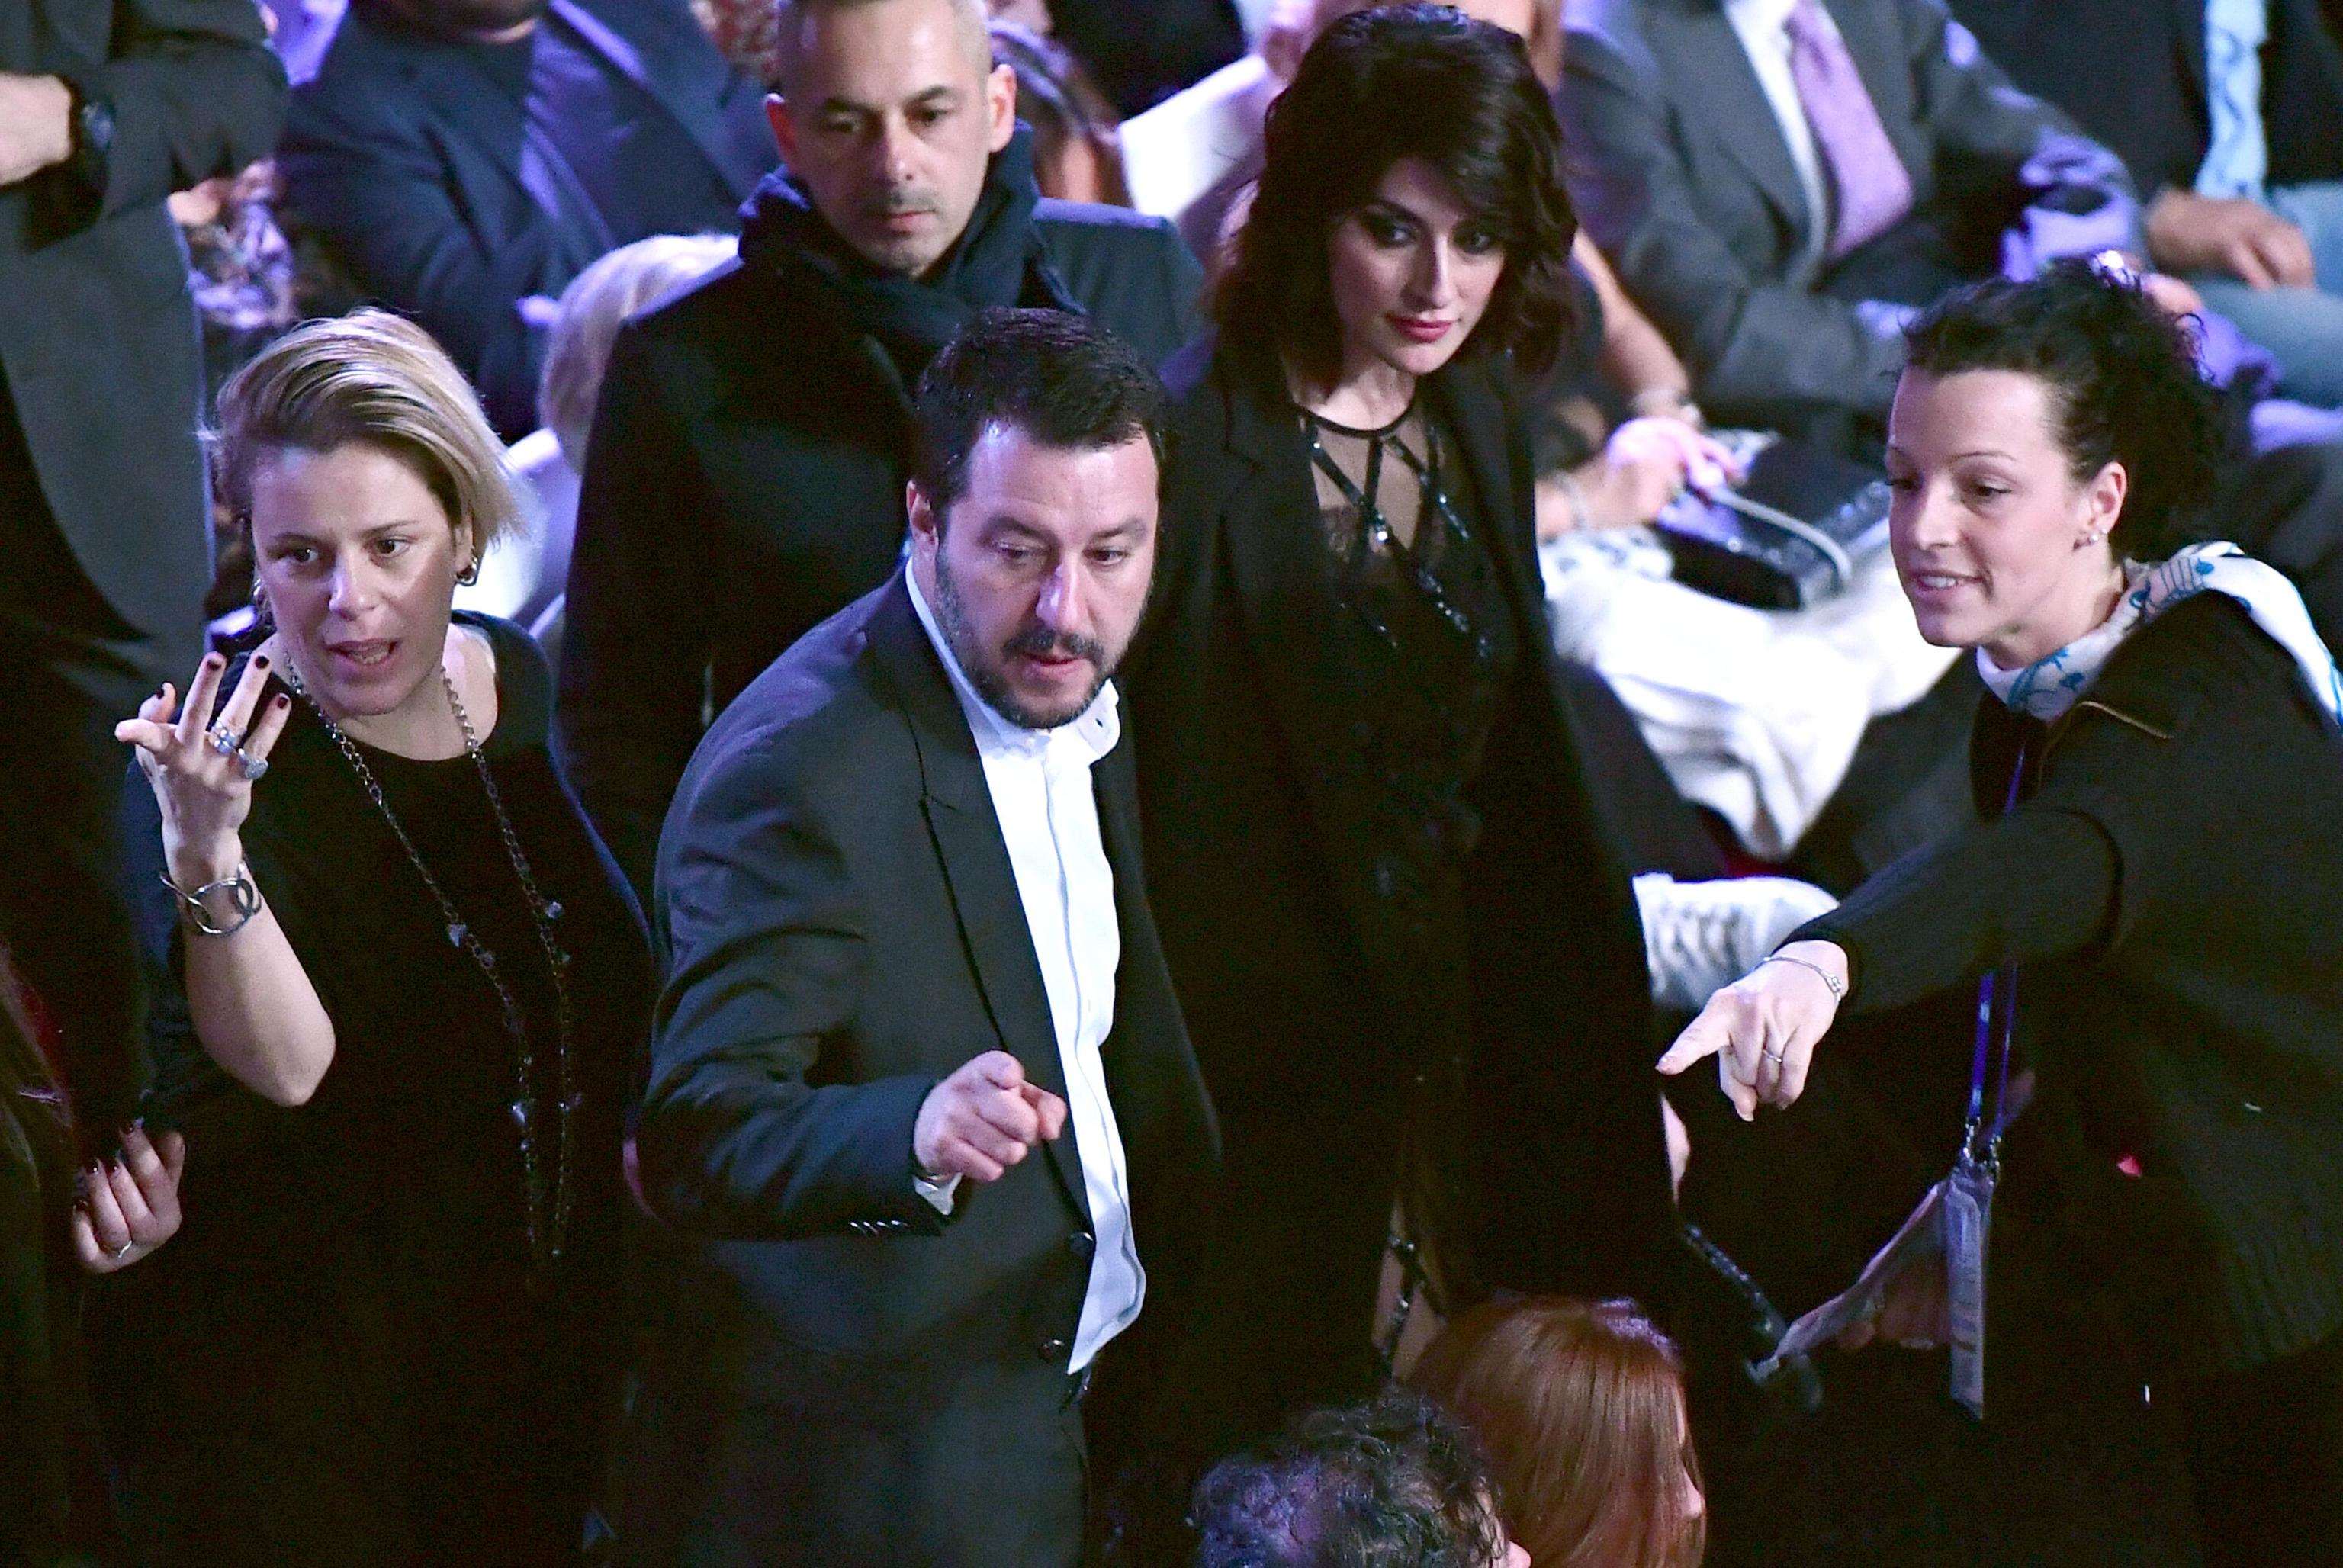 ... Northern League (Lega Nord) party leader Matteo Salvini and his partner  Elisa Isoardi at ... f31a2518ffa